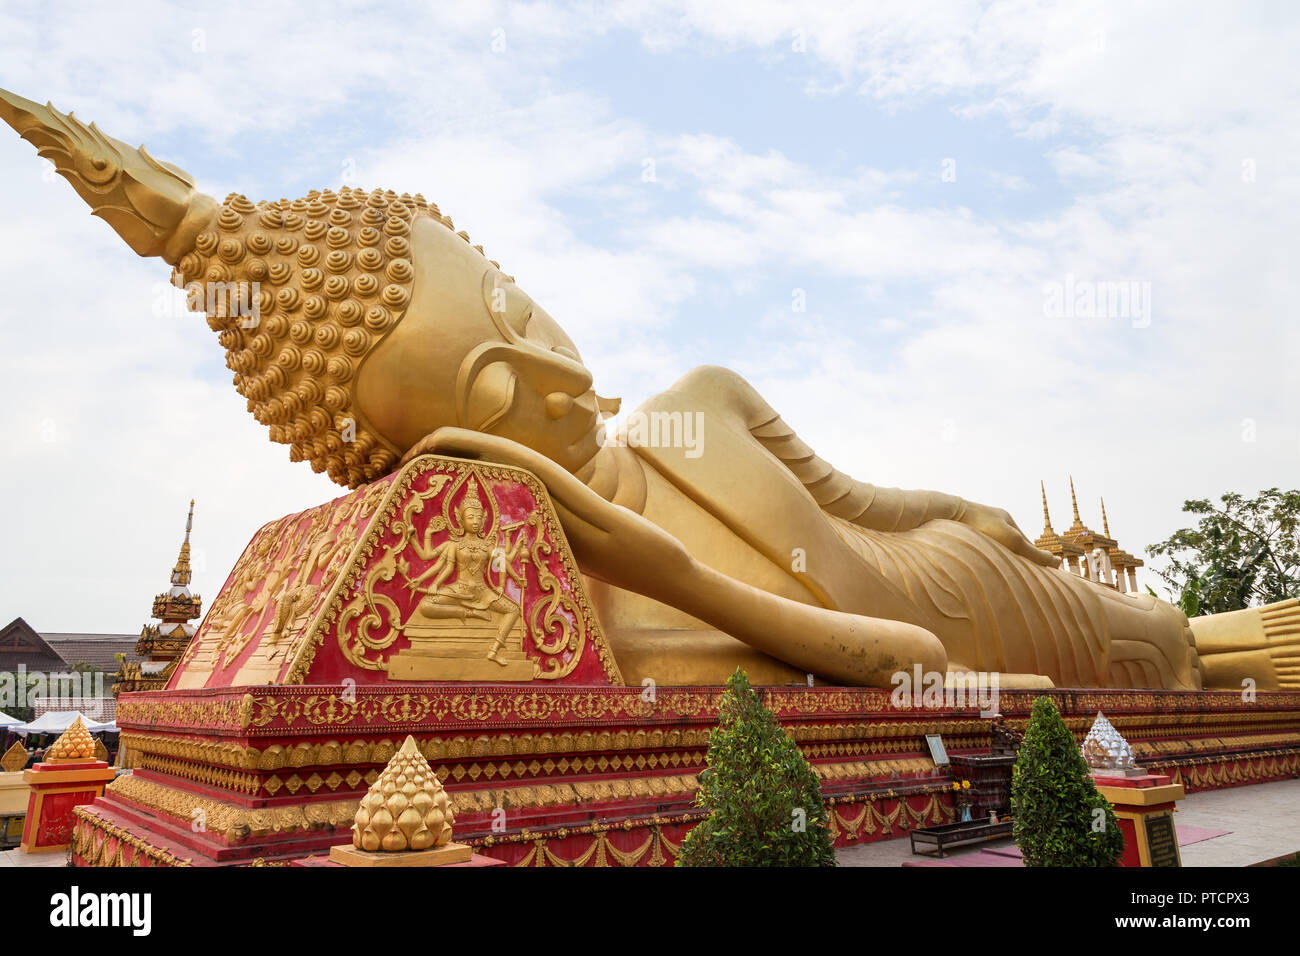 Large gilded Reclining Buddha statue at the Wat That Luang Tai Temple in Vientiane, Laos. - Stock Image